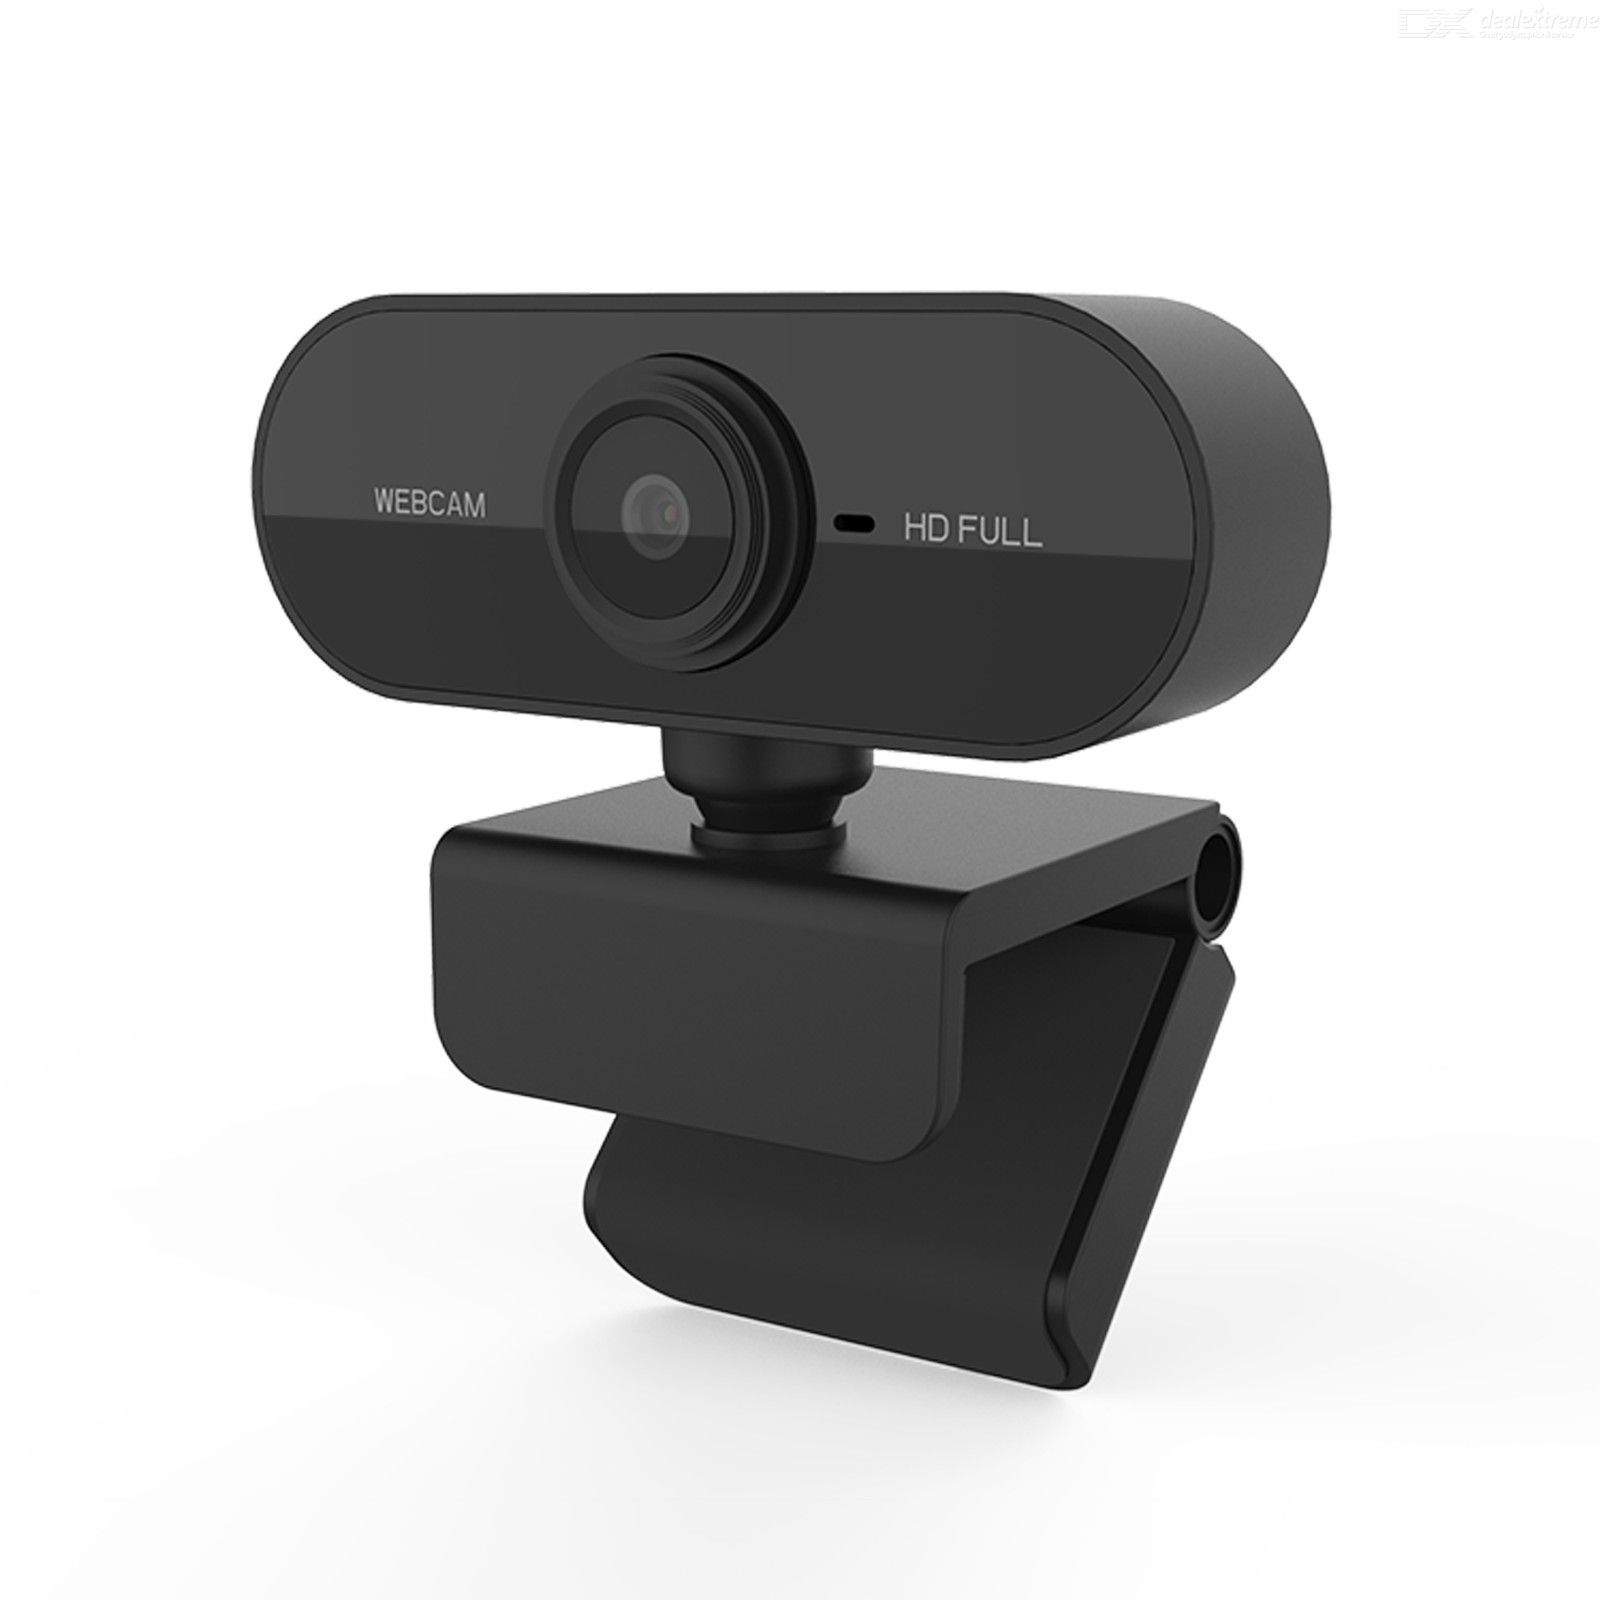 GOFORAY Web Camera HD 1080P USB Video Cam with Mic 2 Megapixels Drive Free Webcam for PC Video Calling Meeting Online Teaching